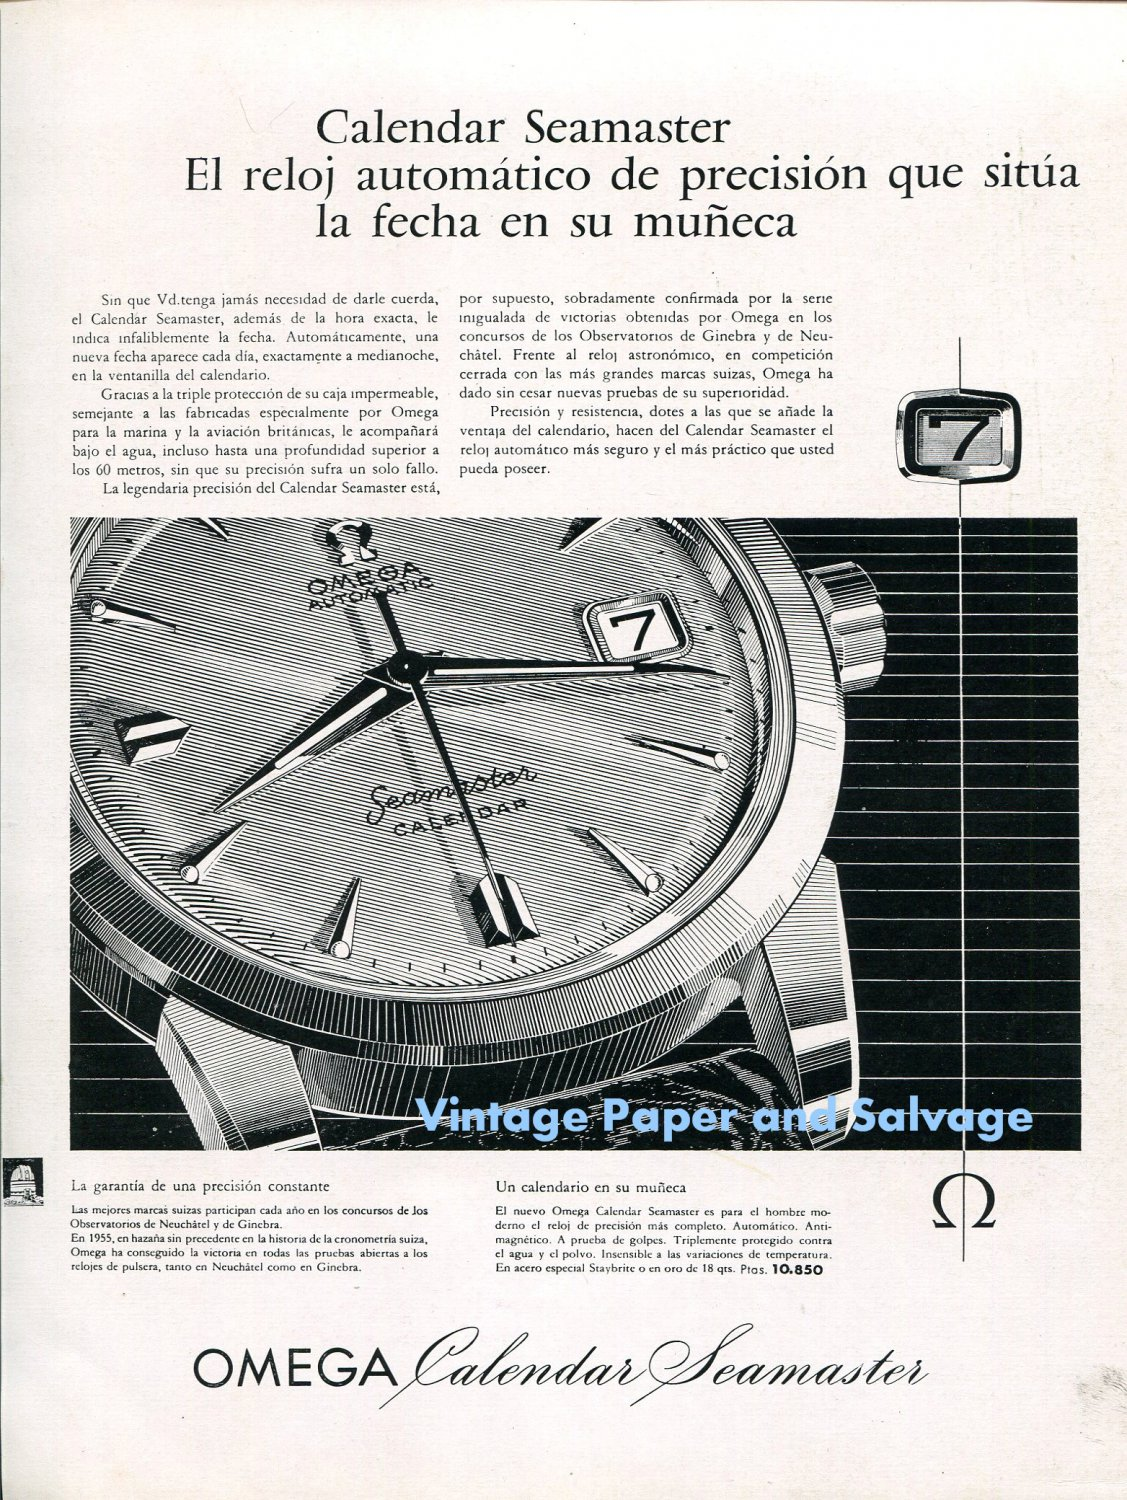 Calendario 1958.Vintage 1958 Omega Calendar Seamaster Watch Advert 1950s Spanish Print Ad Spain Omega Ch